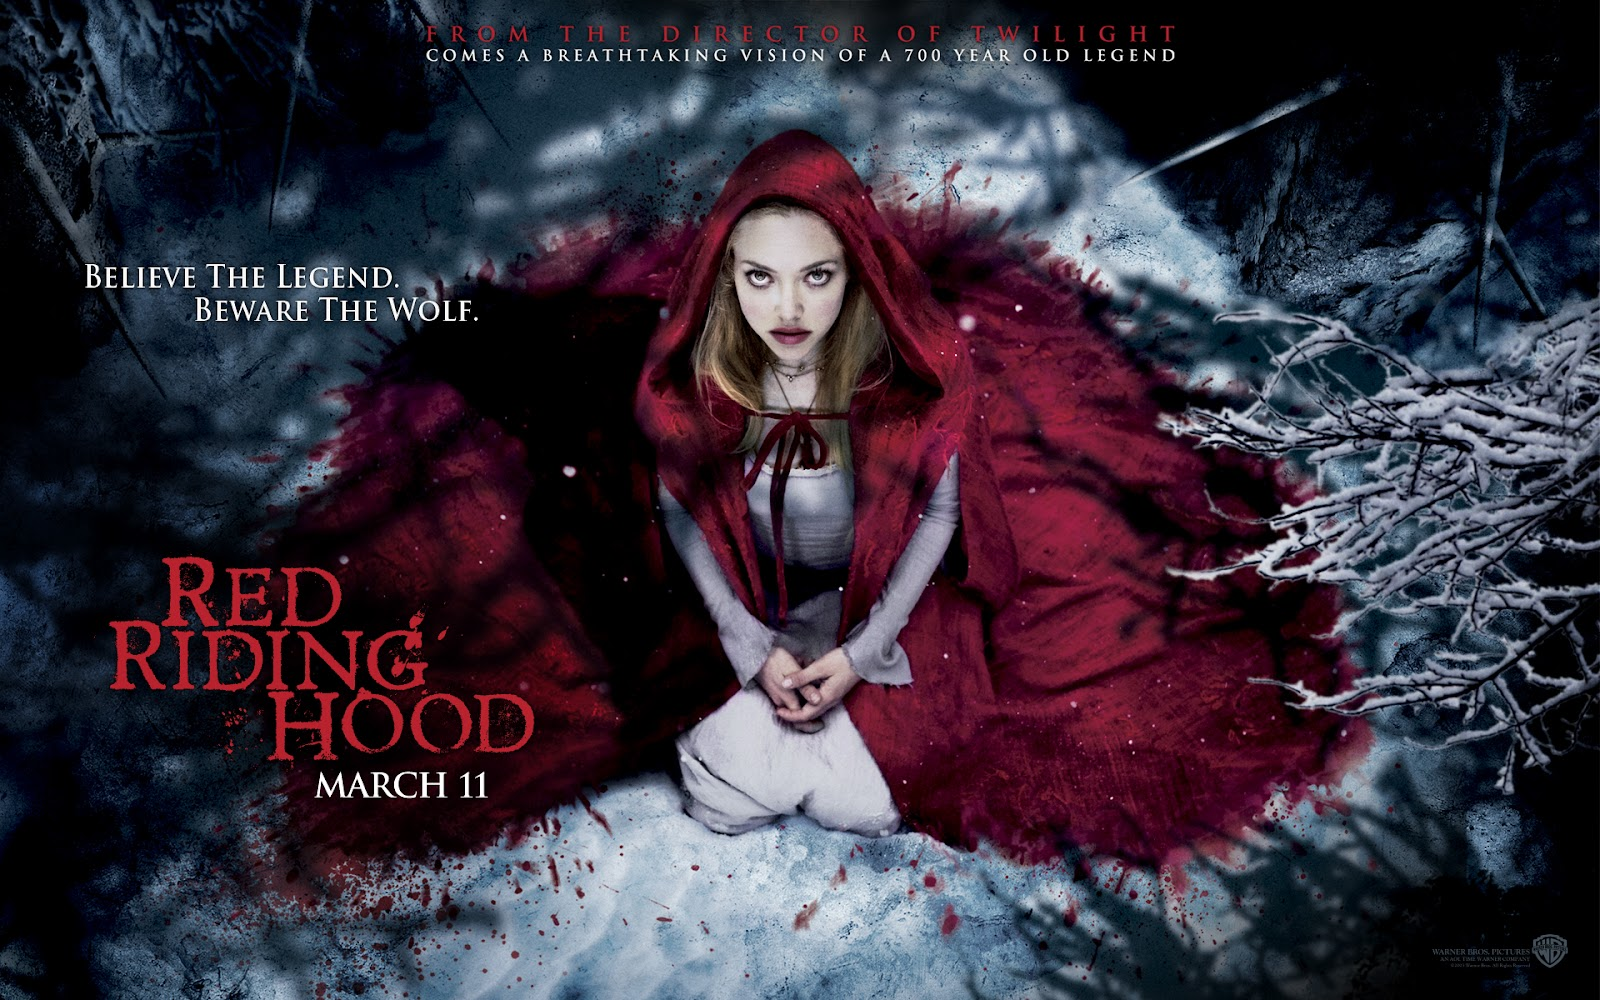 http://2.bp.blogspot.com/-k2GwucwxA8E/T7vatk39JvI/AAAAAAAACDg/IvEdGvNar50/s1600/Red-Riding-Hood-Wallpapers-1920x1200-3.jpg